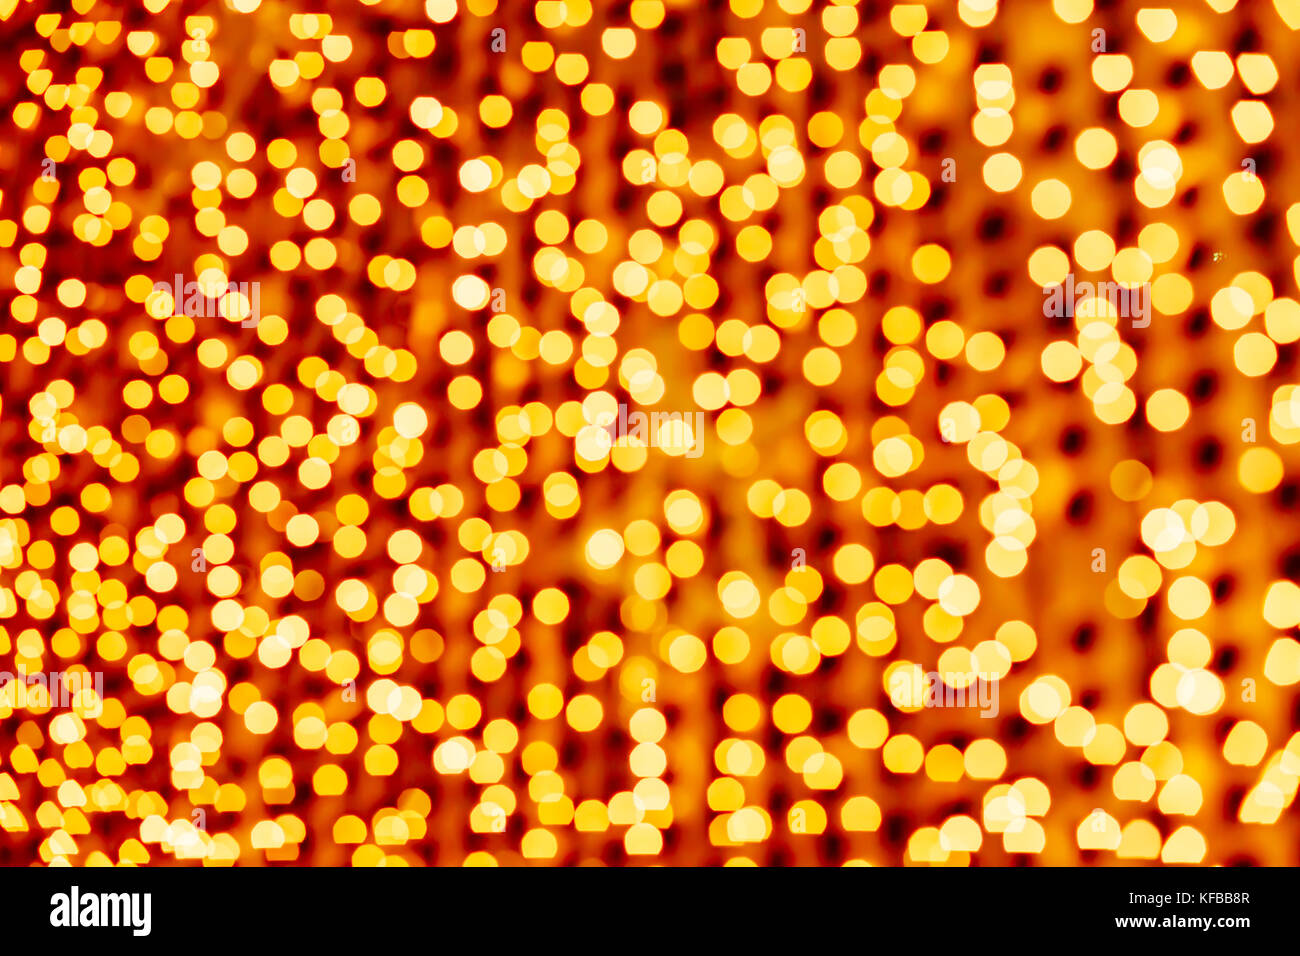 Résumé fond jaune. Bokeh. Fond de Noël, Nouvel an. Photo Stock